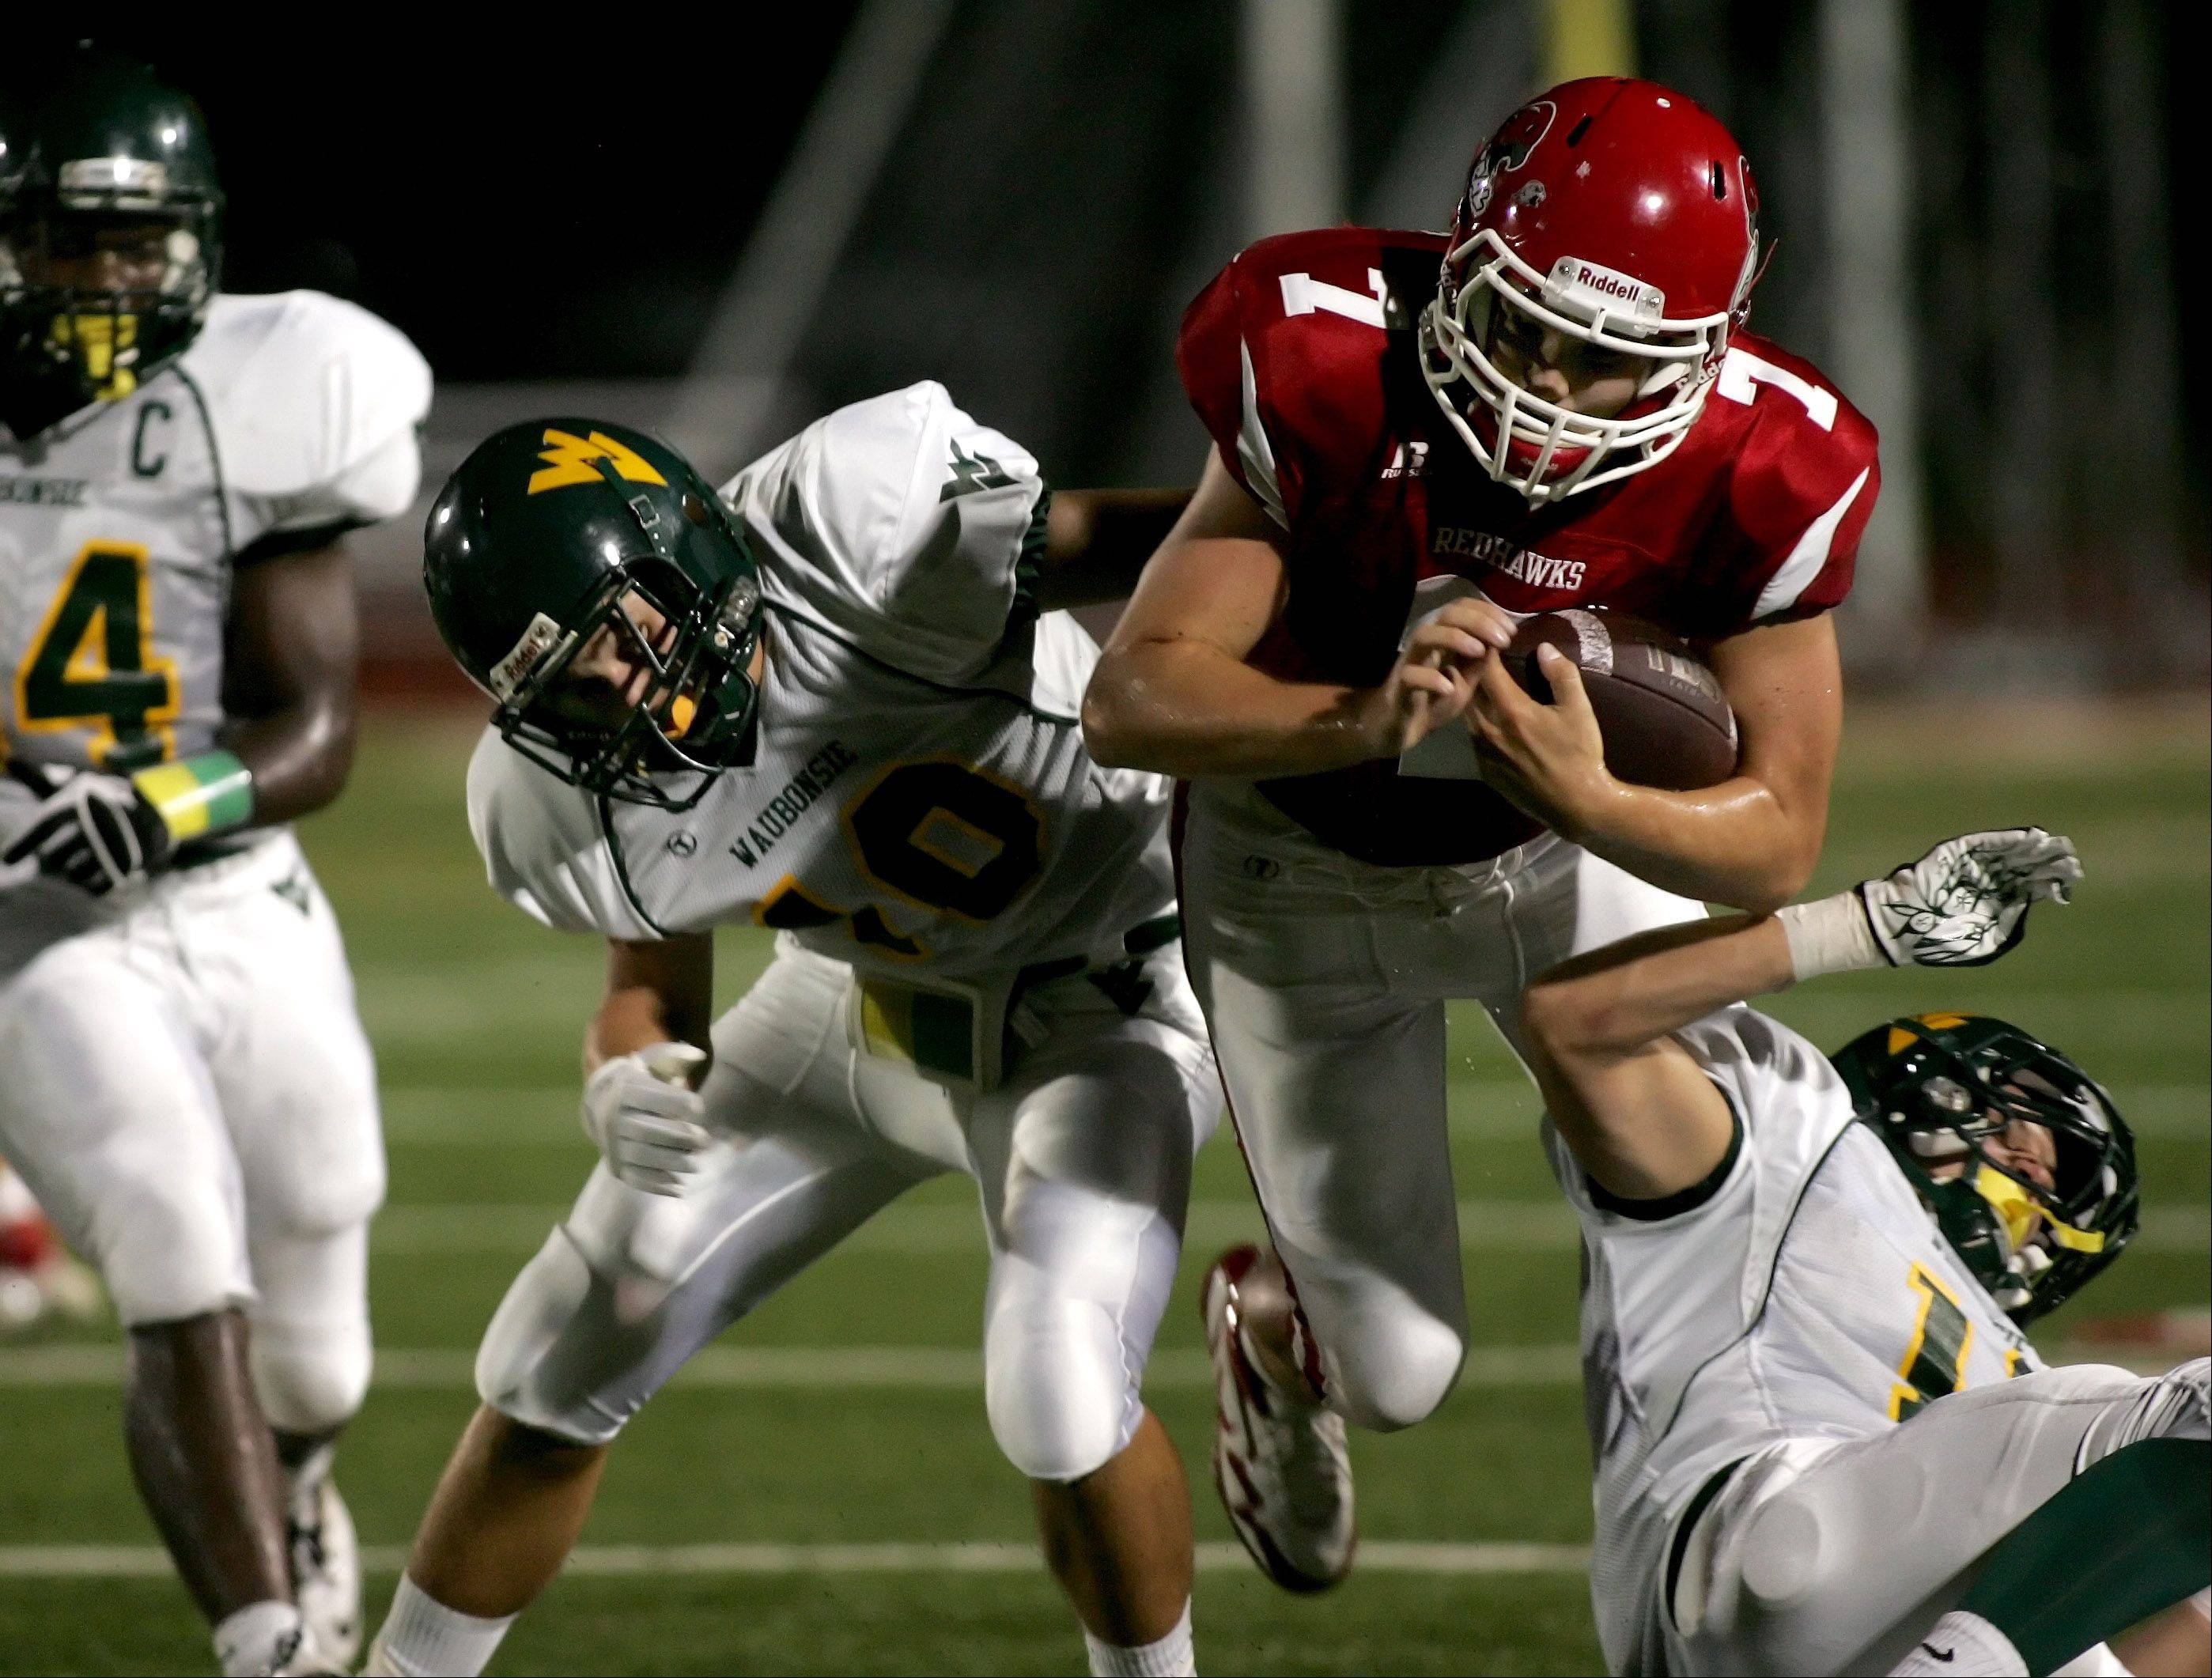 Bev Horne/bhorne@dailyherald.com Connor Mersch, left and Jim Delaney, right, of Waubonsie Valley tackle quarterback Ian Lewandowski of Naperville Central in football action Friday in Naperville.